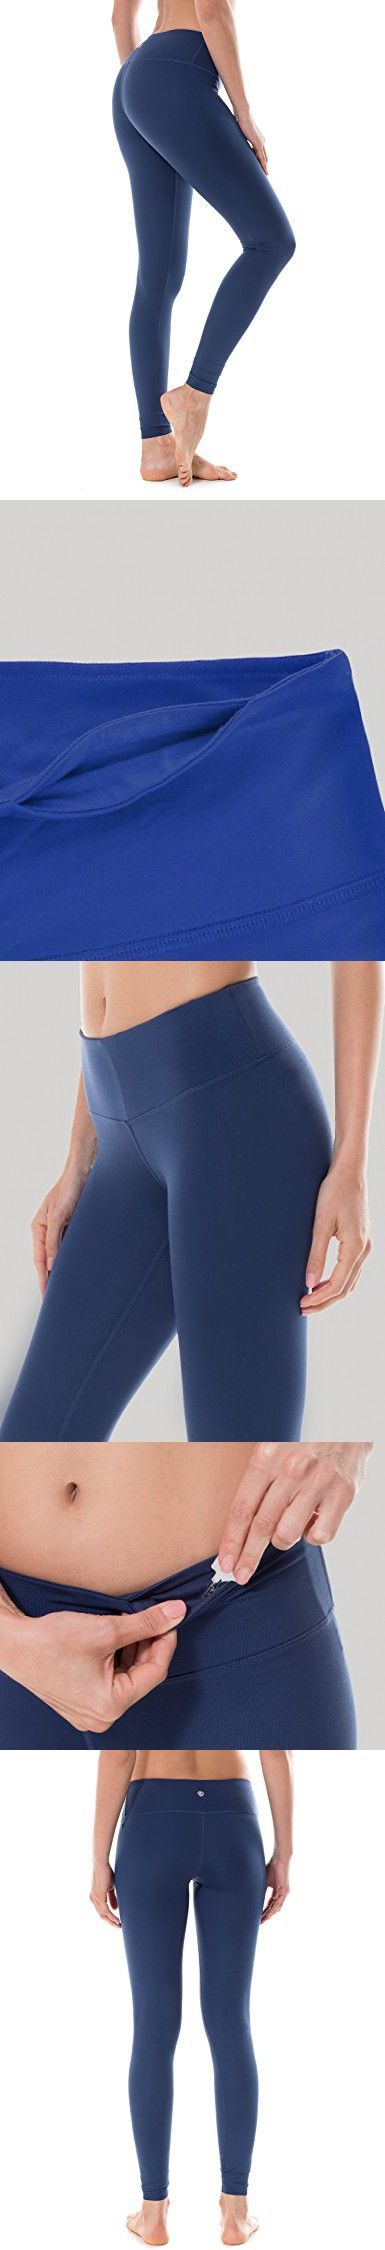 CRZ YOGA Women's Running Tights Workout Leggings Slimming Yoga Pants With Pockets Navy M (8-10)